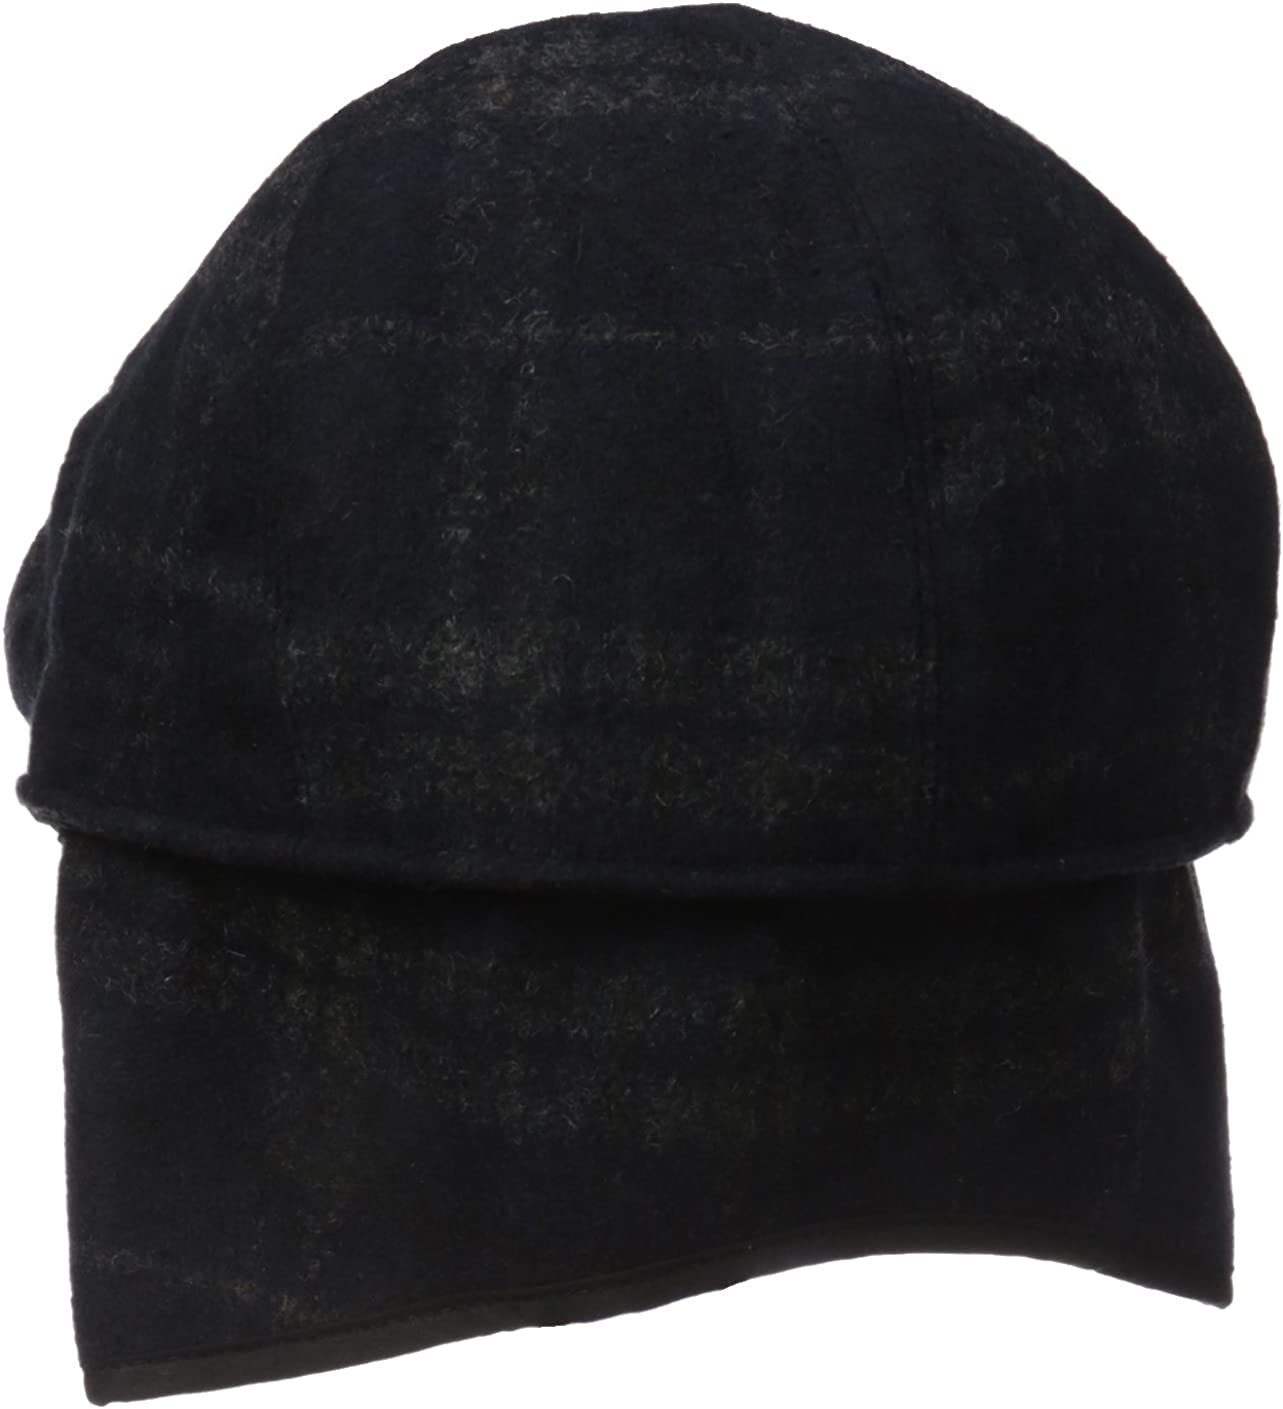 Henschel Hats Mens Wool Blend Plaid Ivy Hat with Earflaps Newsboy Cap